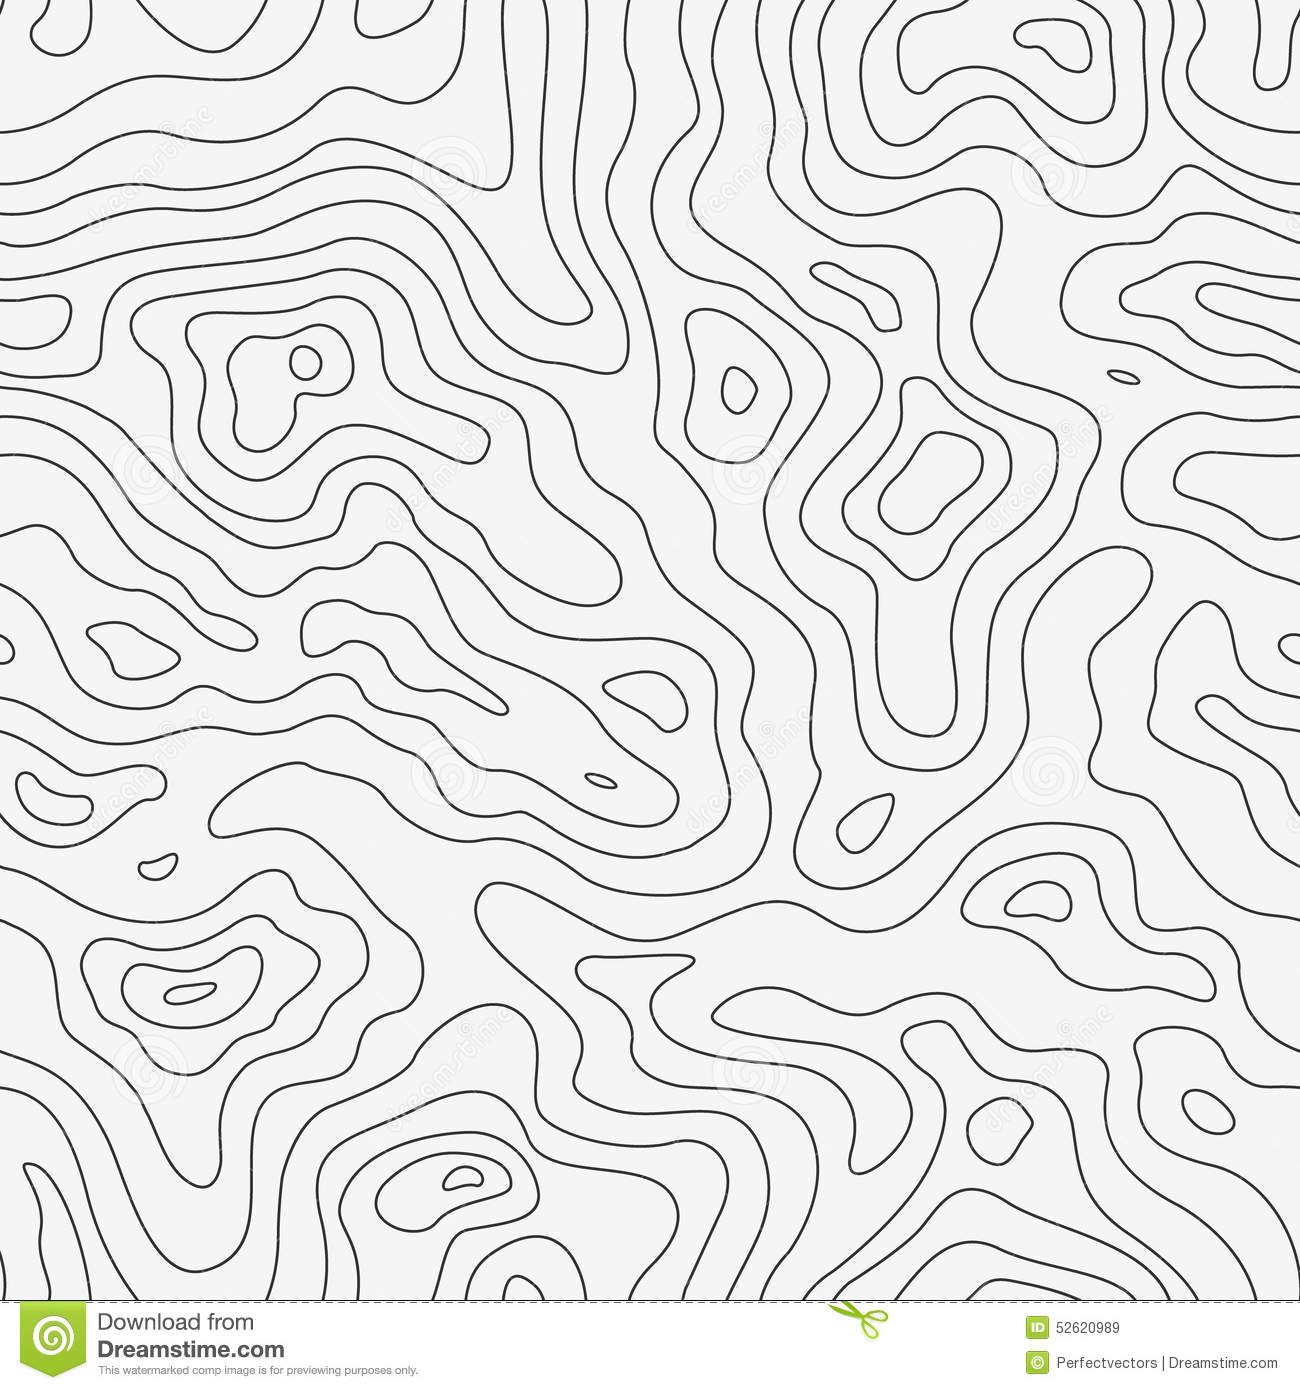 Topographic Map Vector Free.Topographic Map Seamless Pattern Stock Vector Illustration Of